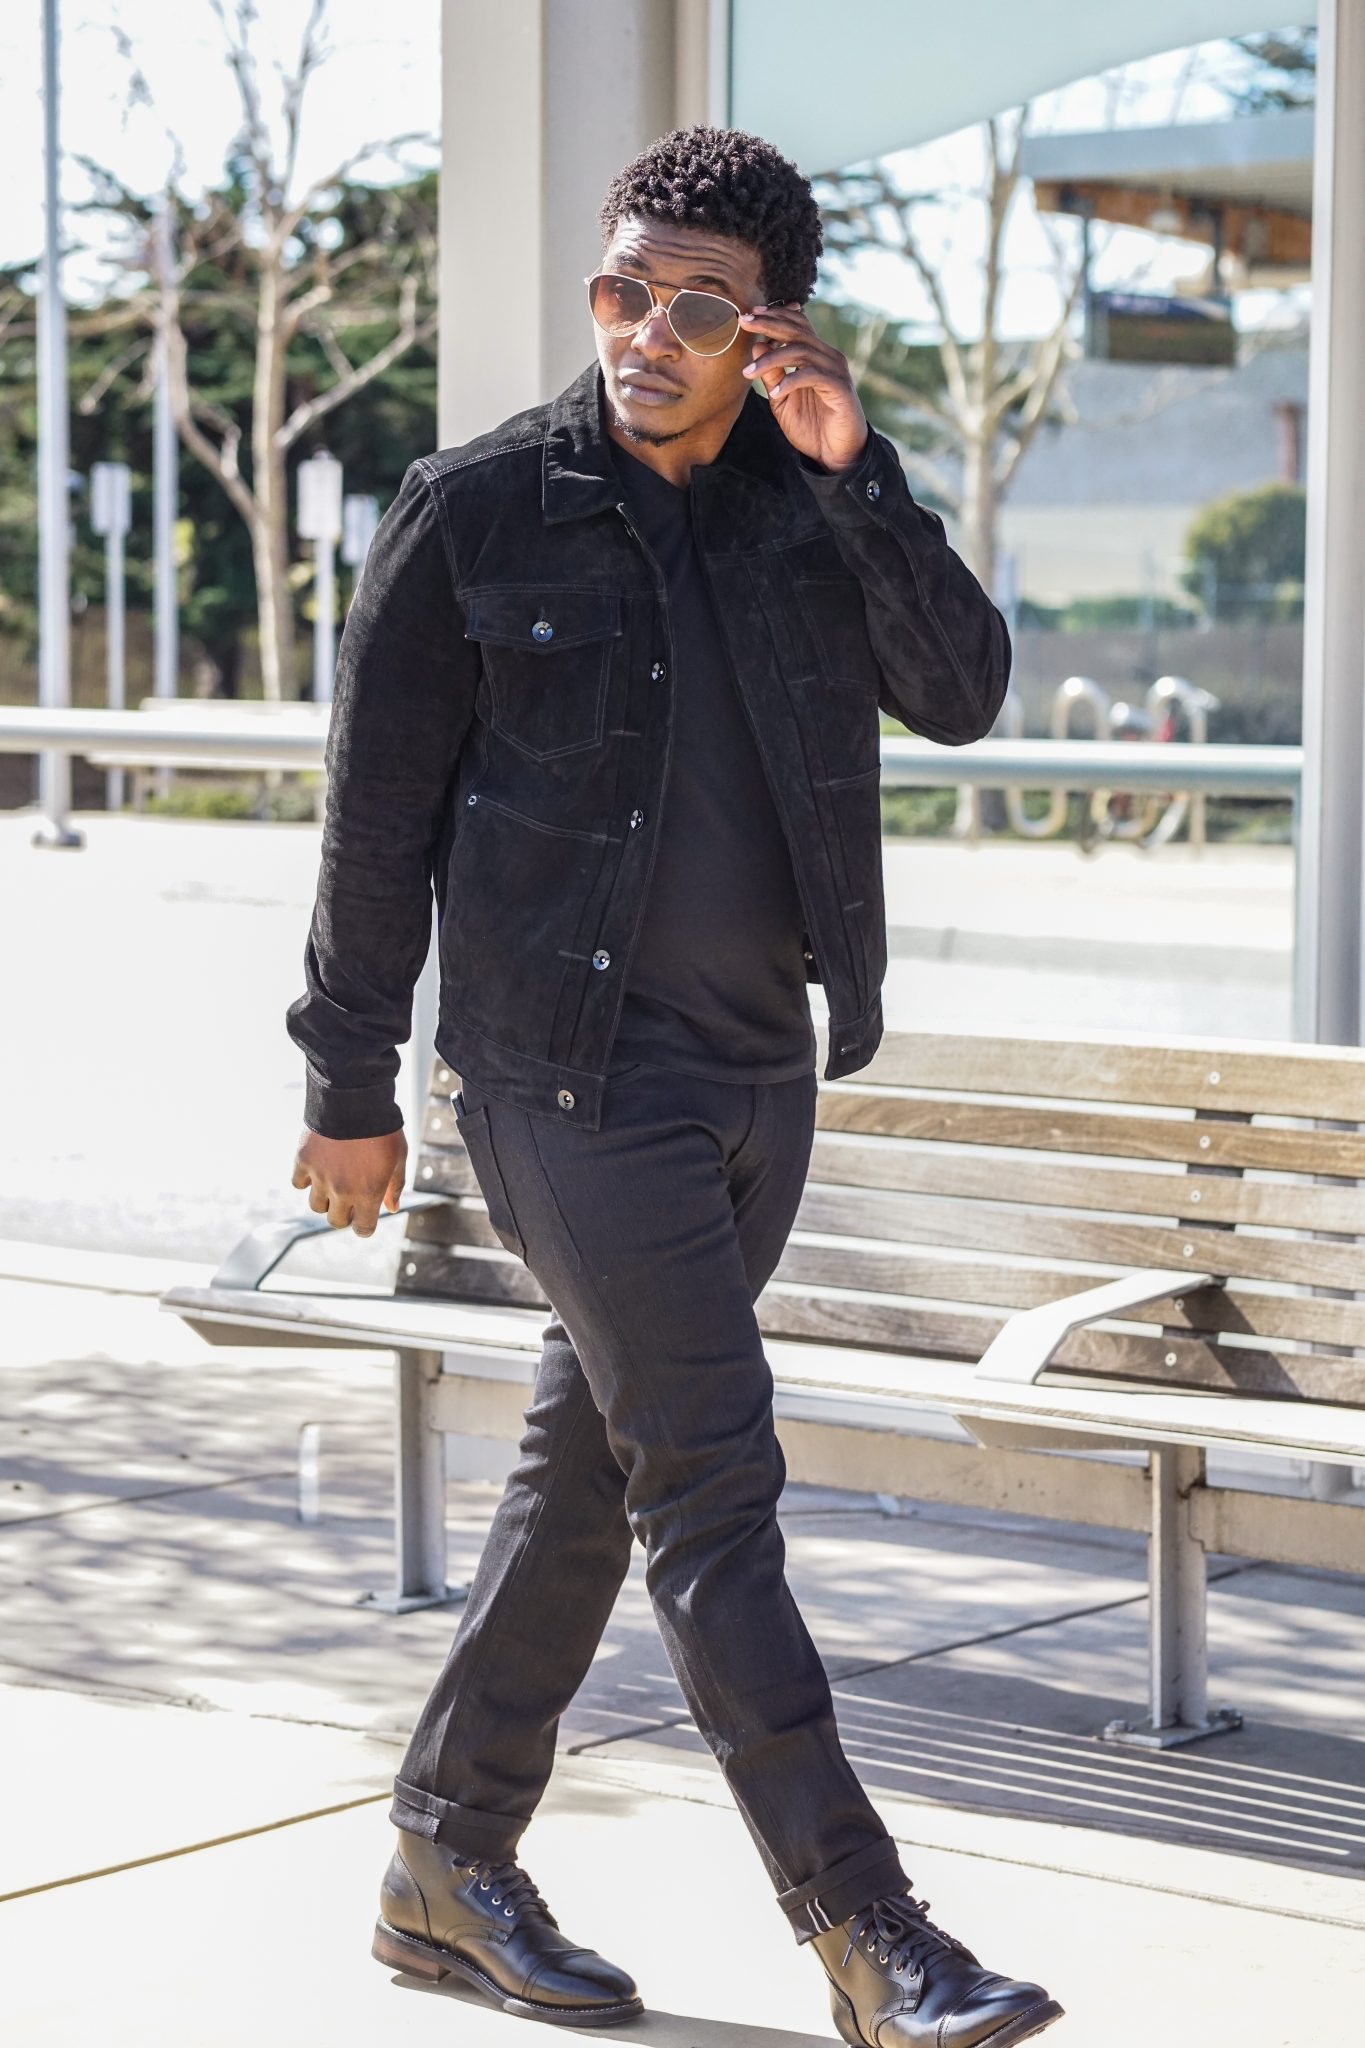 dapper-advisor-black-man-wearing-black-jack-threads-suede-leather-jacket-thursday-boots-black-captain-all black-outfit-1